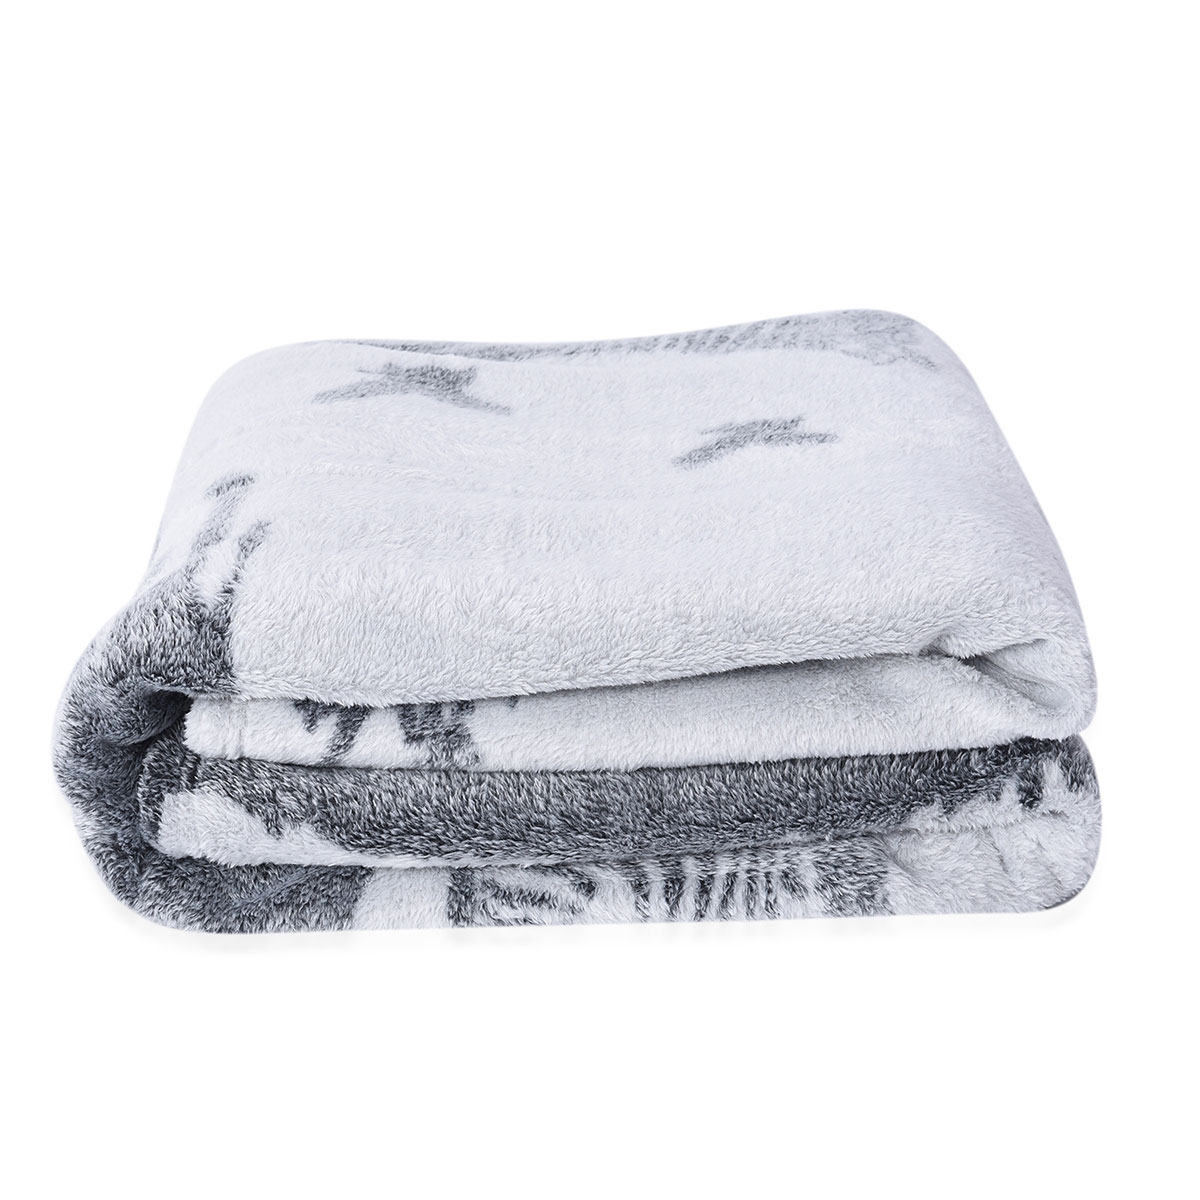 Blush Floral Embossed Microfiber Flannel Blanket Throw Soft Luxury for Couch